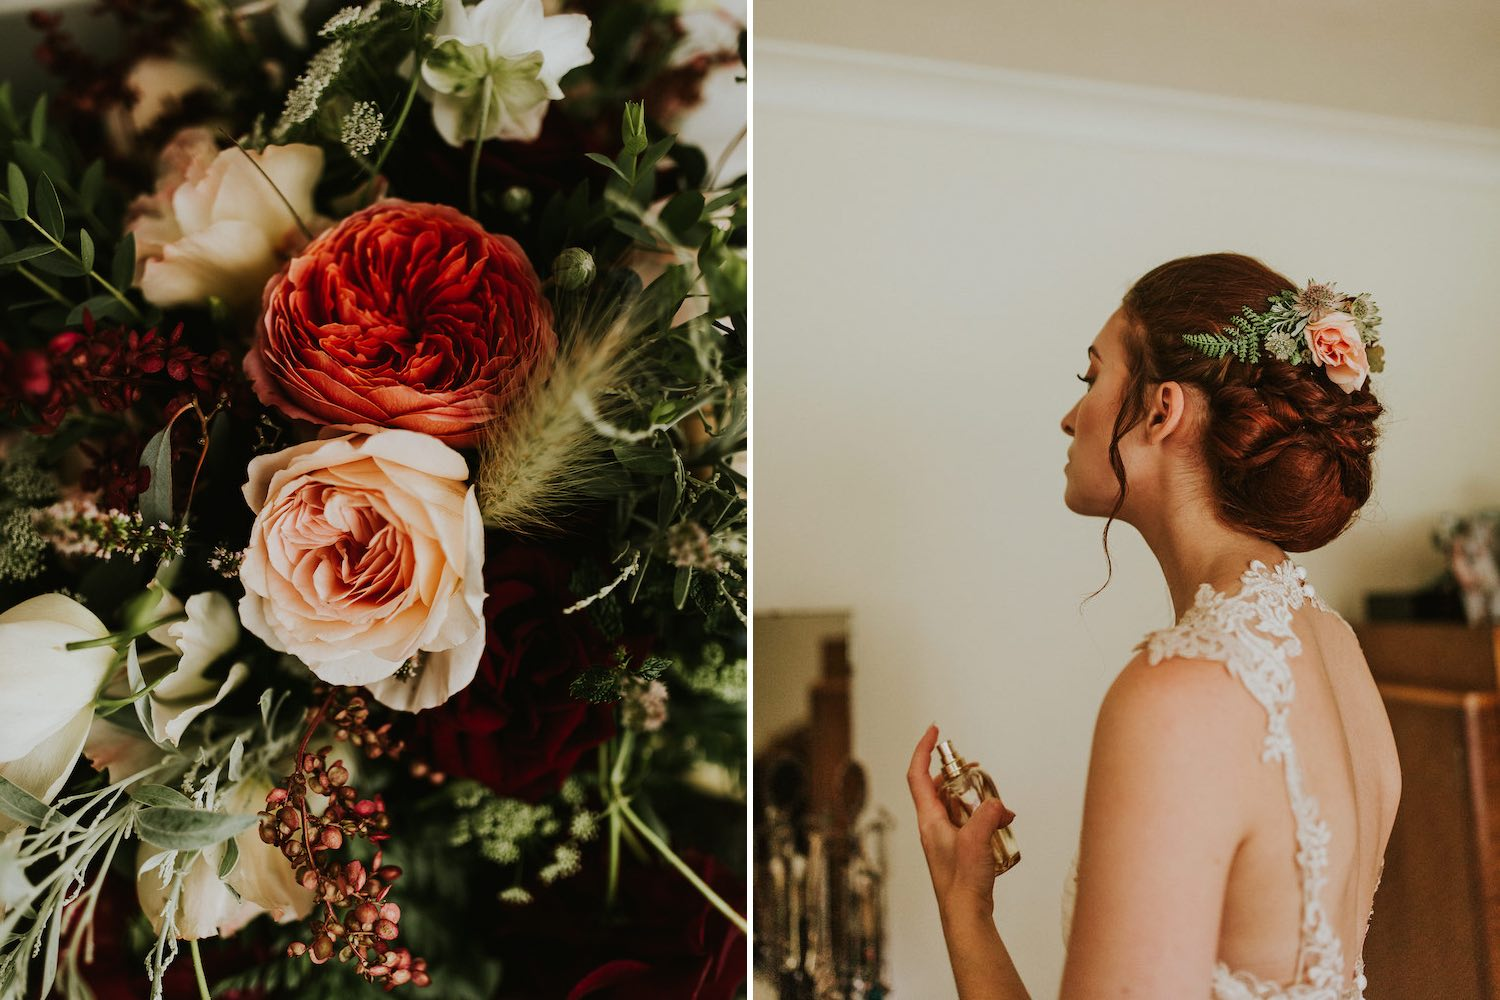 Bride getting ready for wedding with flower clip and bouquet